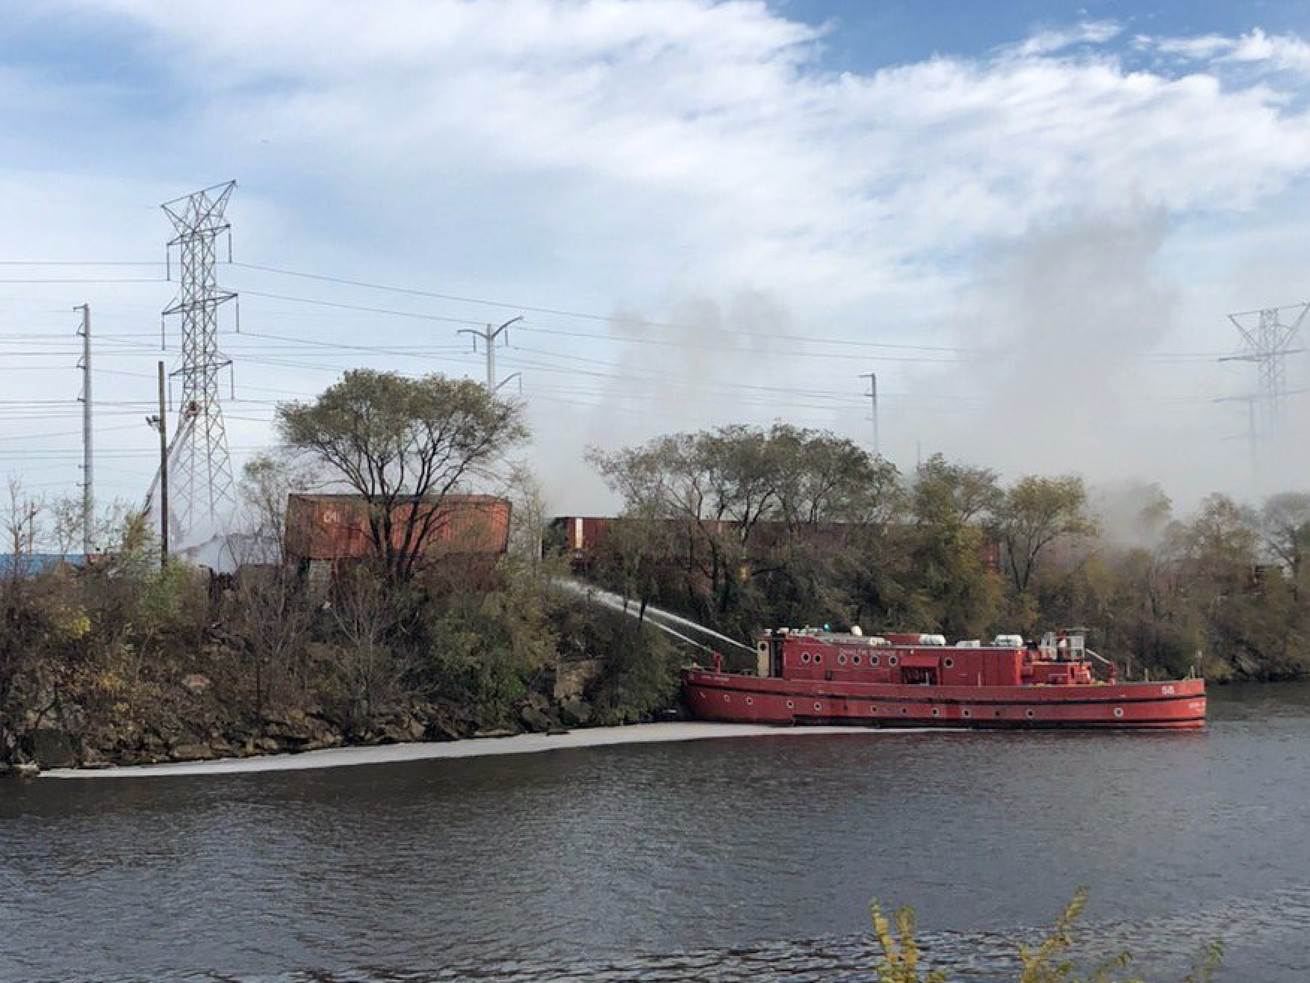 A Chicago Fire Department boat helped extinguish a fire Nov. 5, 2020, at Citywide Disposal, 5001 W. 40th St. in Stickney.